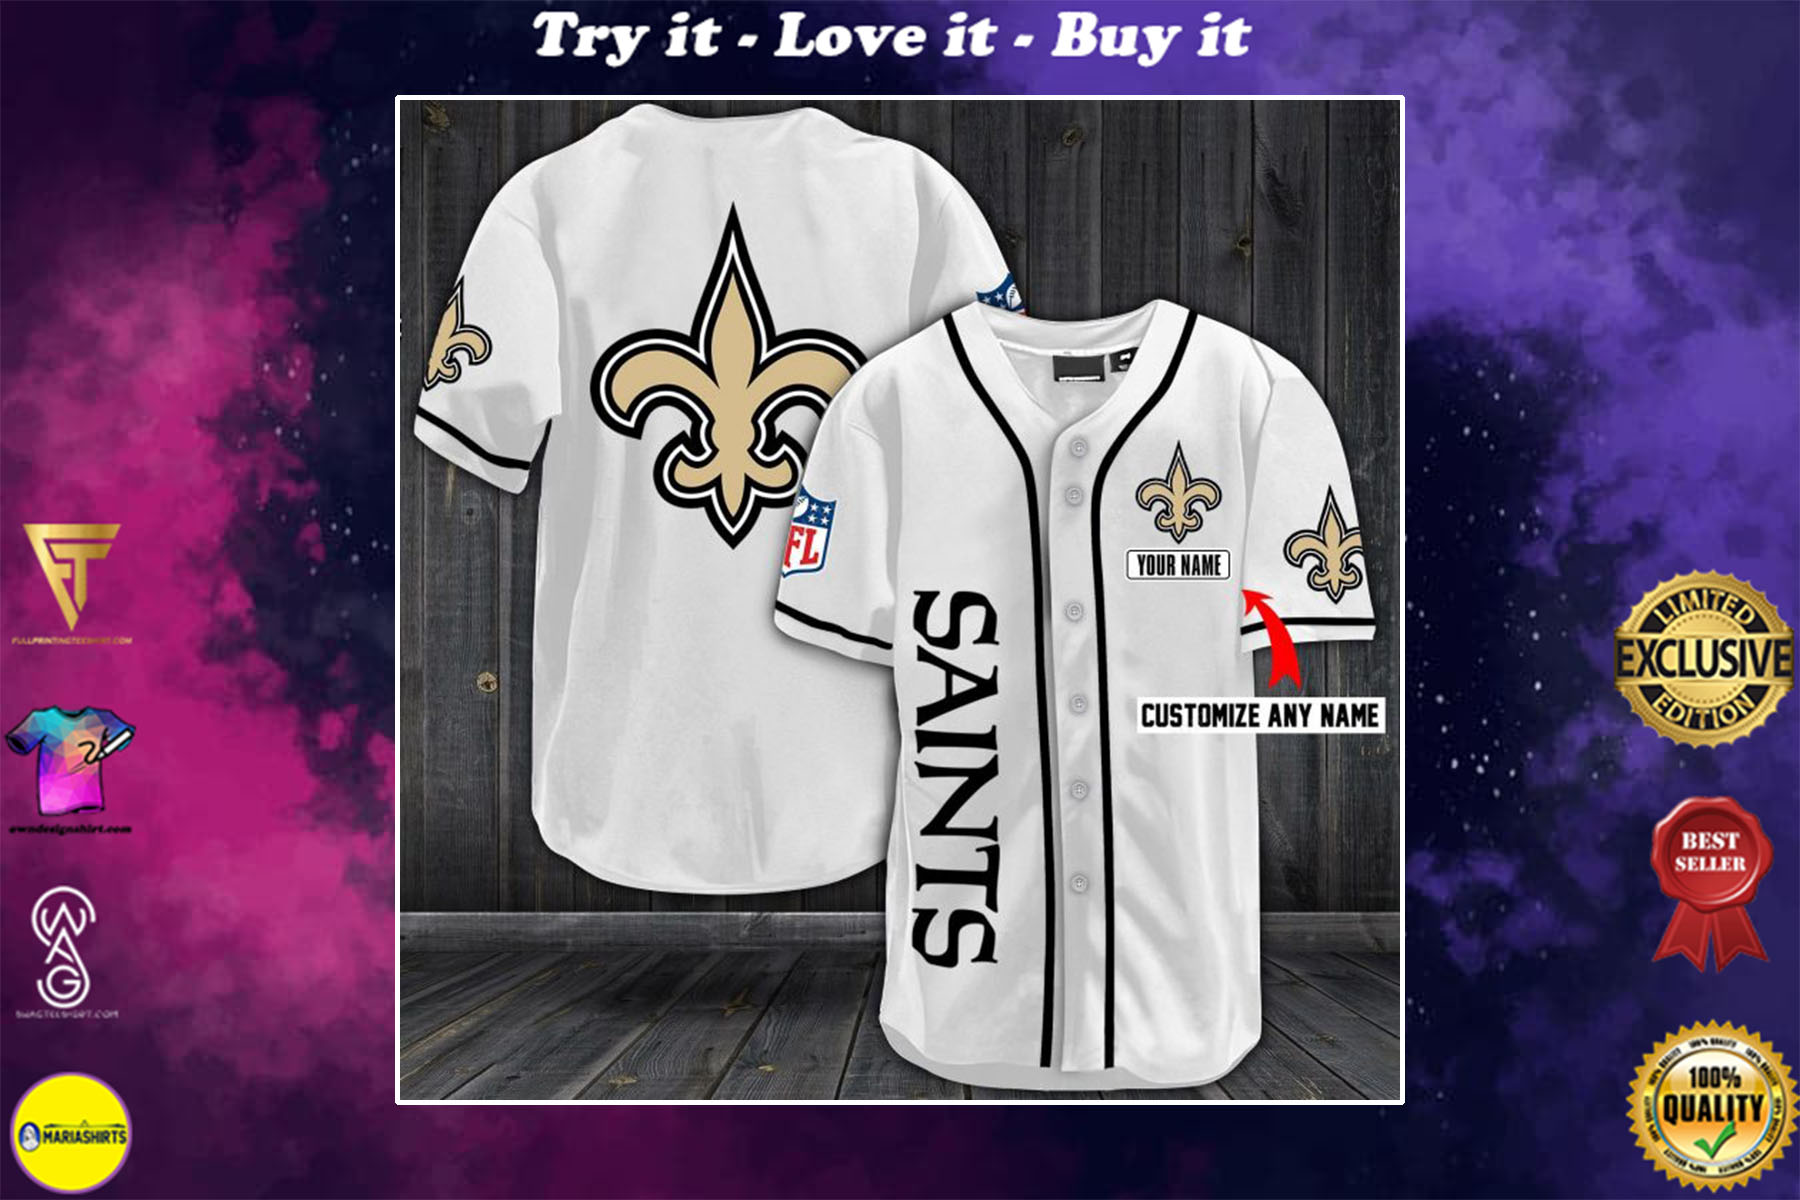 [special edition] personalized name jersey new orleans saints full printing shirt - maria